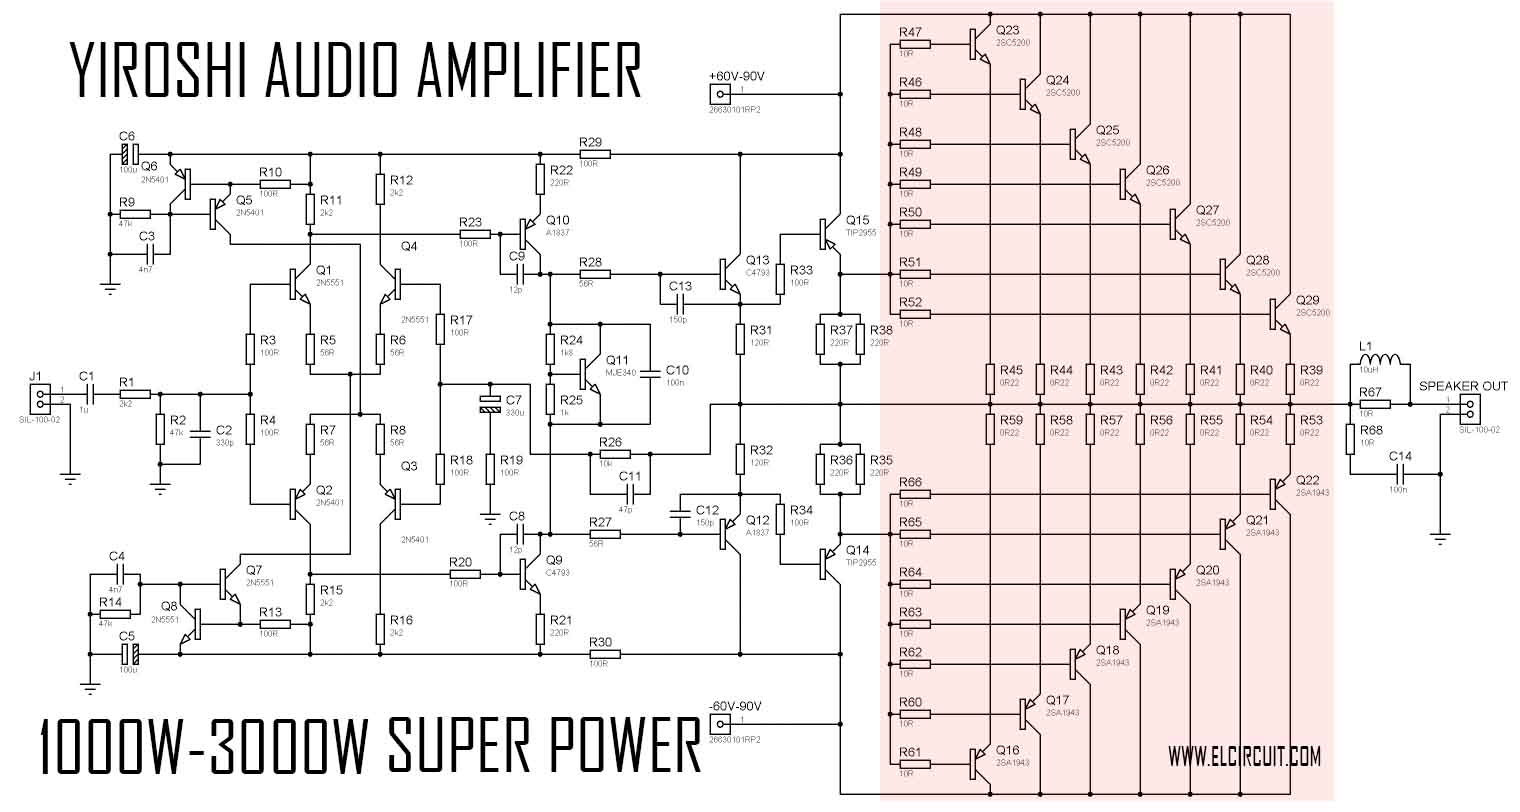 super power amplifier yiroshi audio 1000 watt 1000 watt audio amplifier circuit diagrams 200 watt audio amplifier circuit diagrams #1